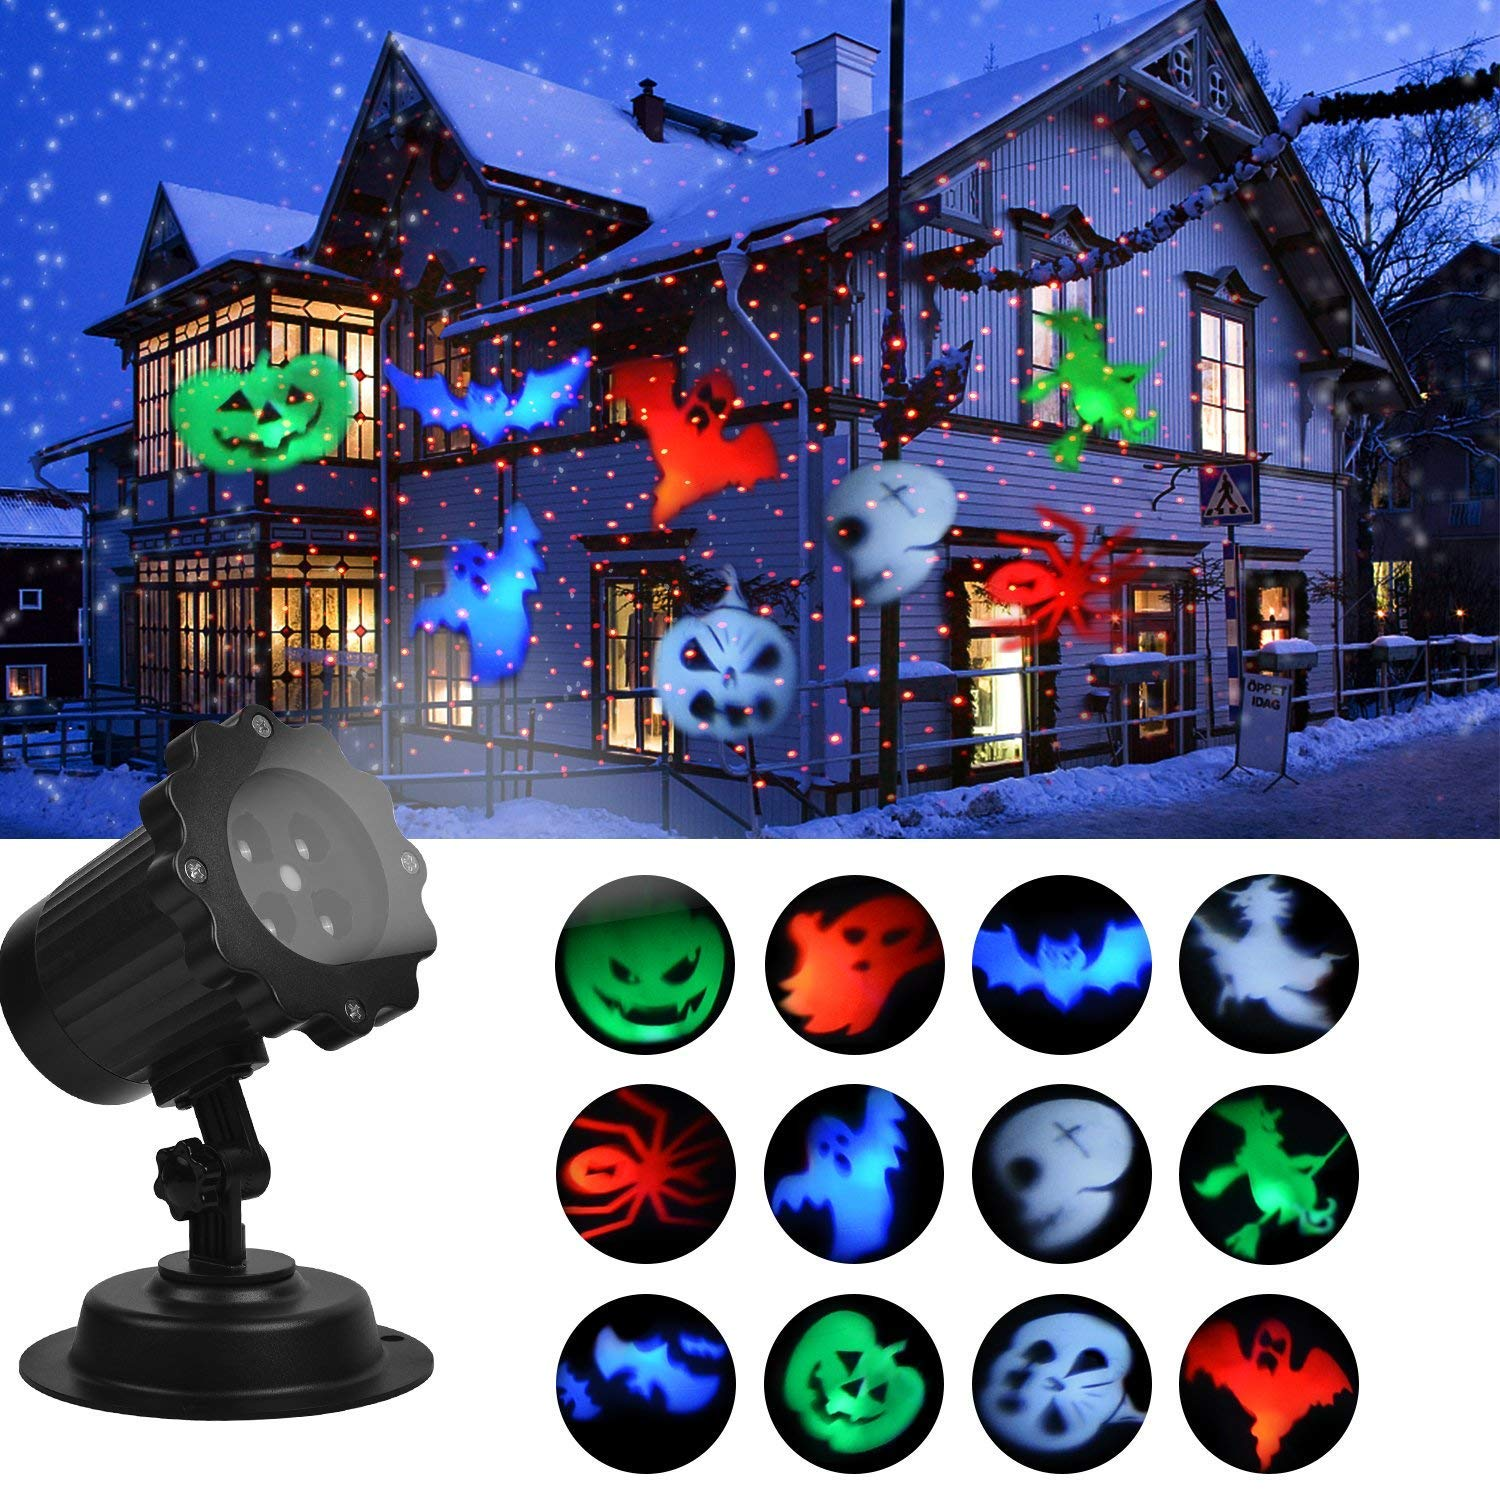 Halloween Decoration Light, Projector Lights Show with Red Dot, Led Landscape Super Bright Spotlight, Waterproof Automatic Rotating Outdoor and Indoor Decoration Holiday Lights